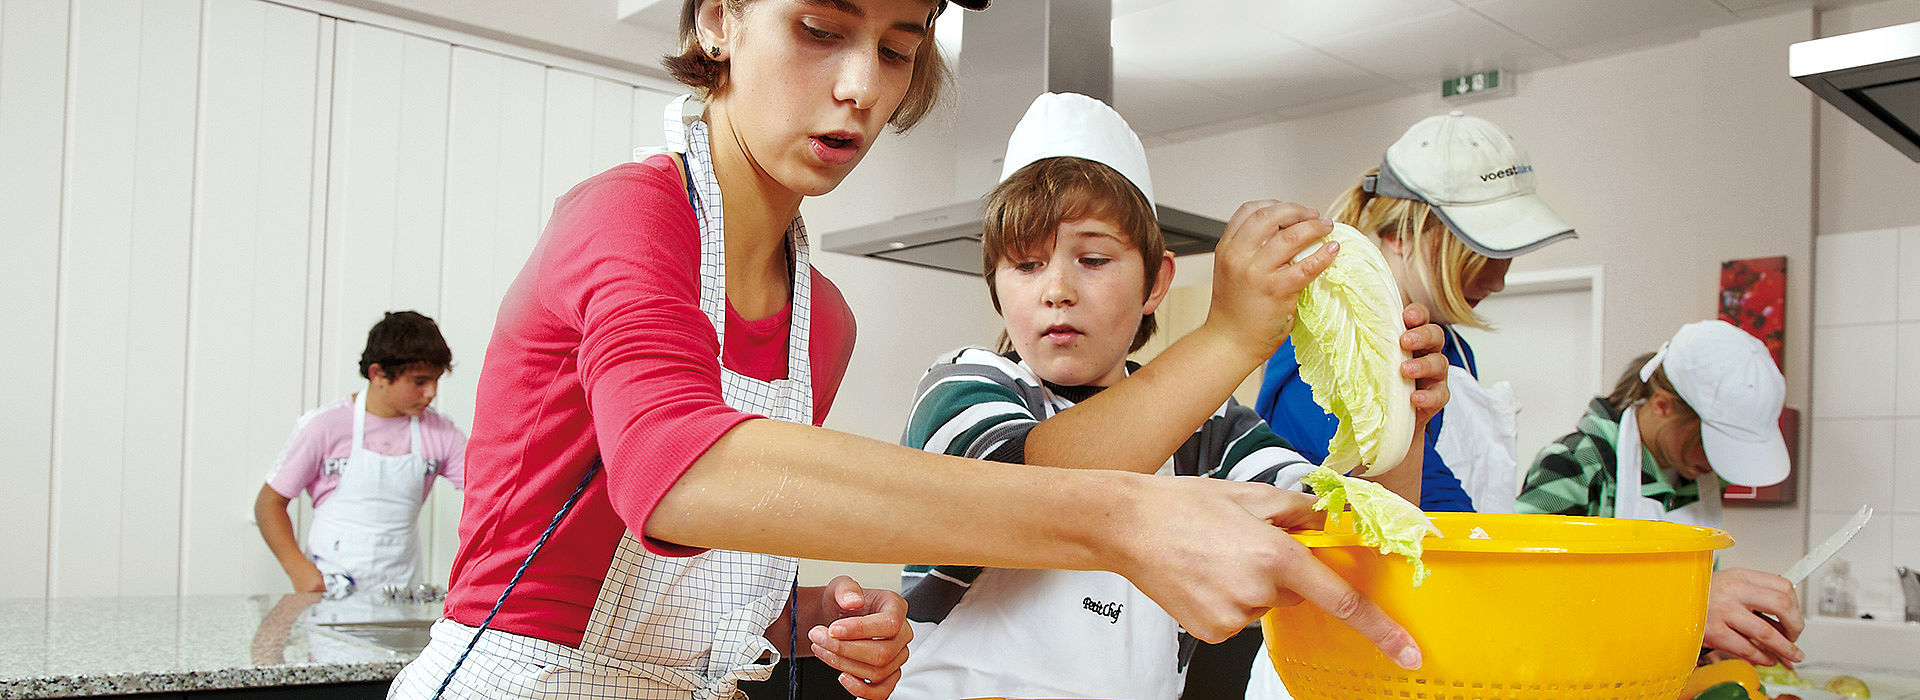 Image: Pupils learning cooking processes in a learning kitchen